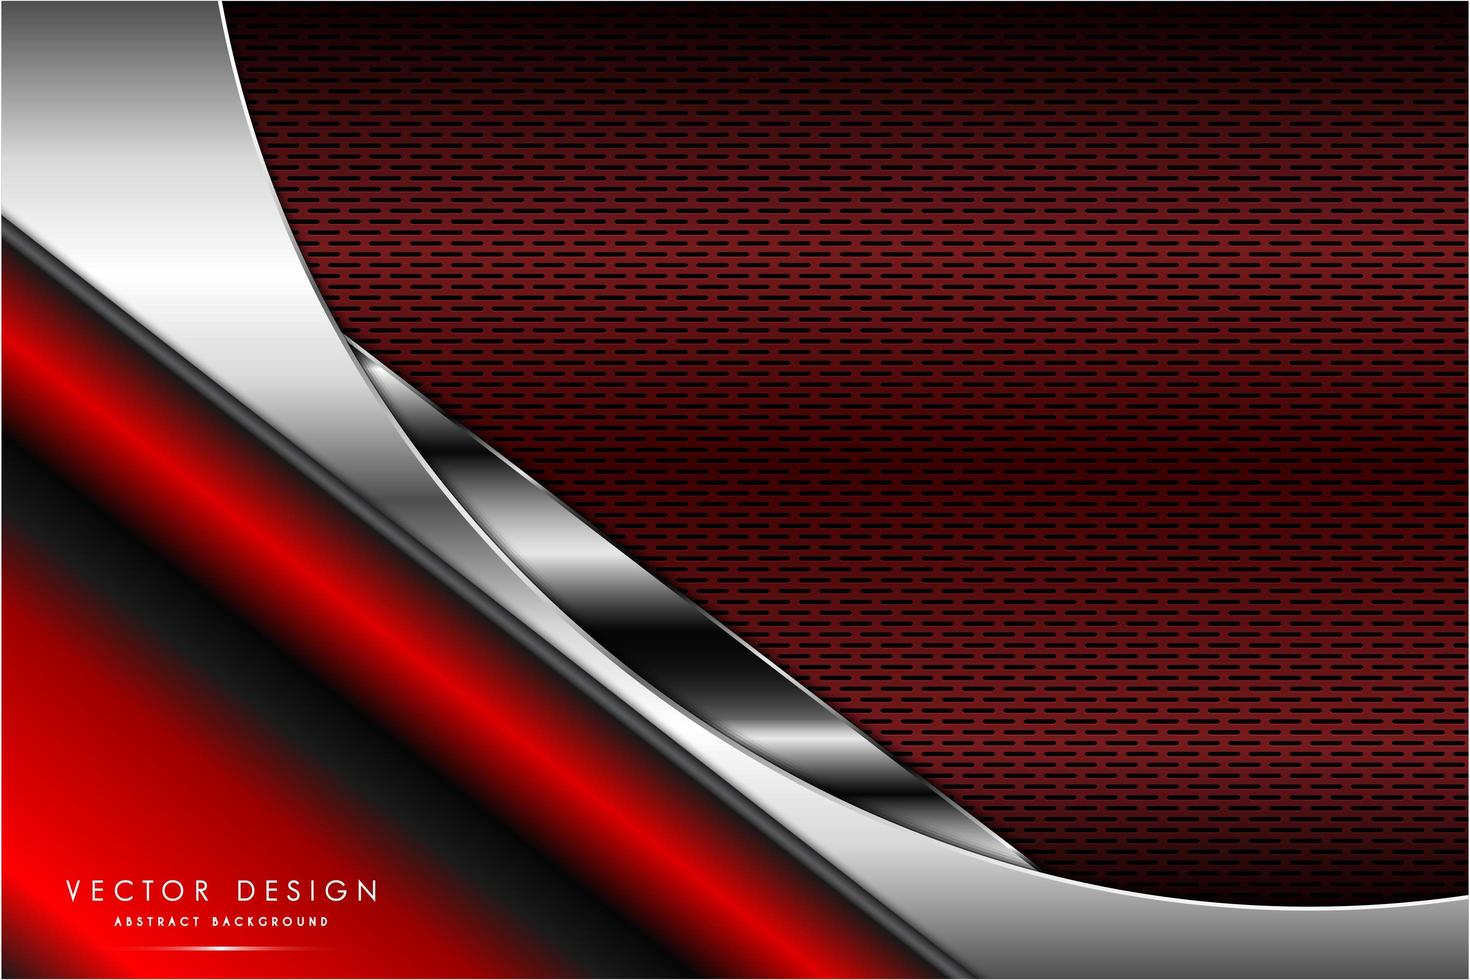 Metallic red and silver design with carbon fiber texture vector